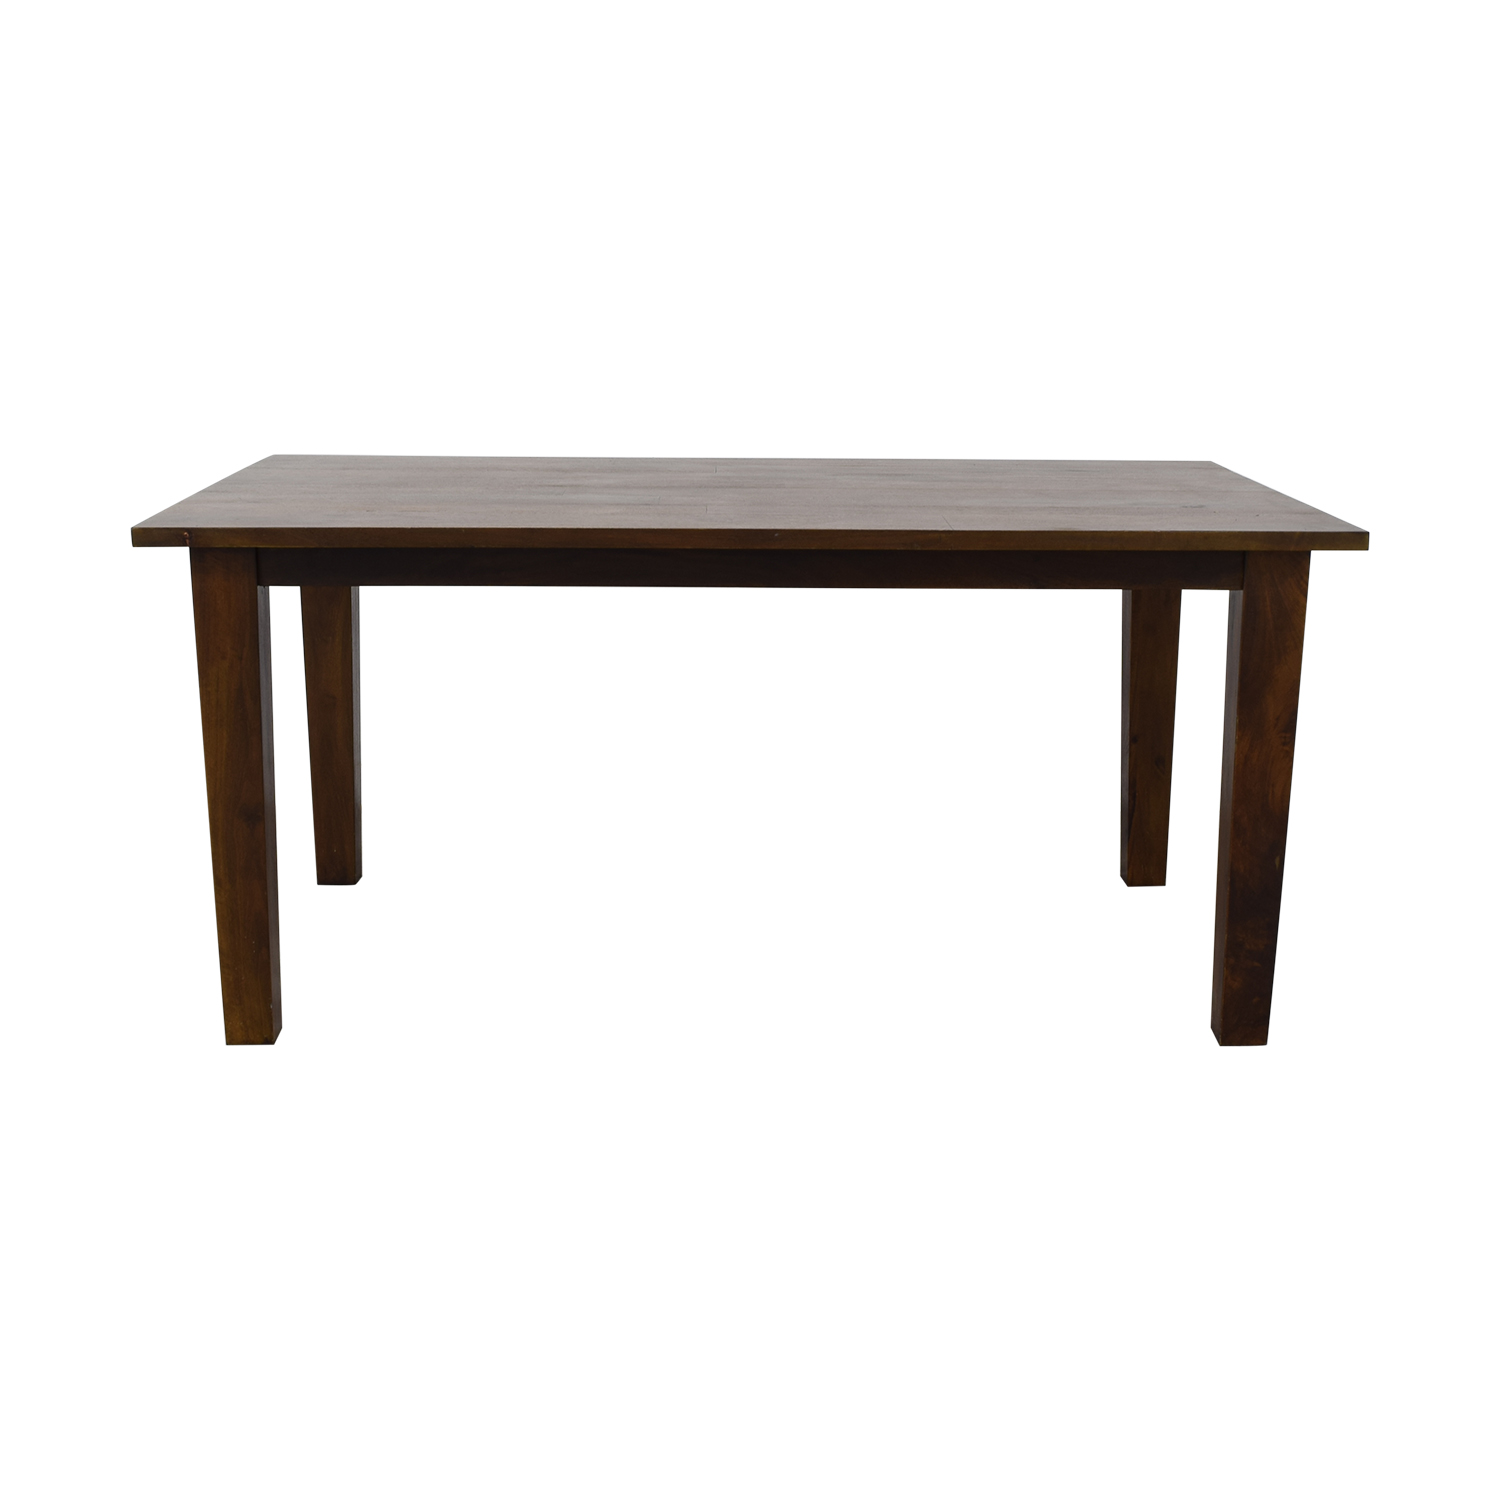 Crate & Barrel Crate & Barrel Basque Honey Dining Table used